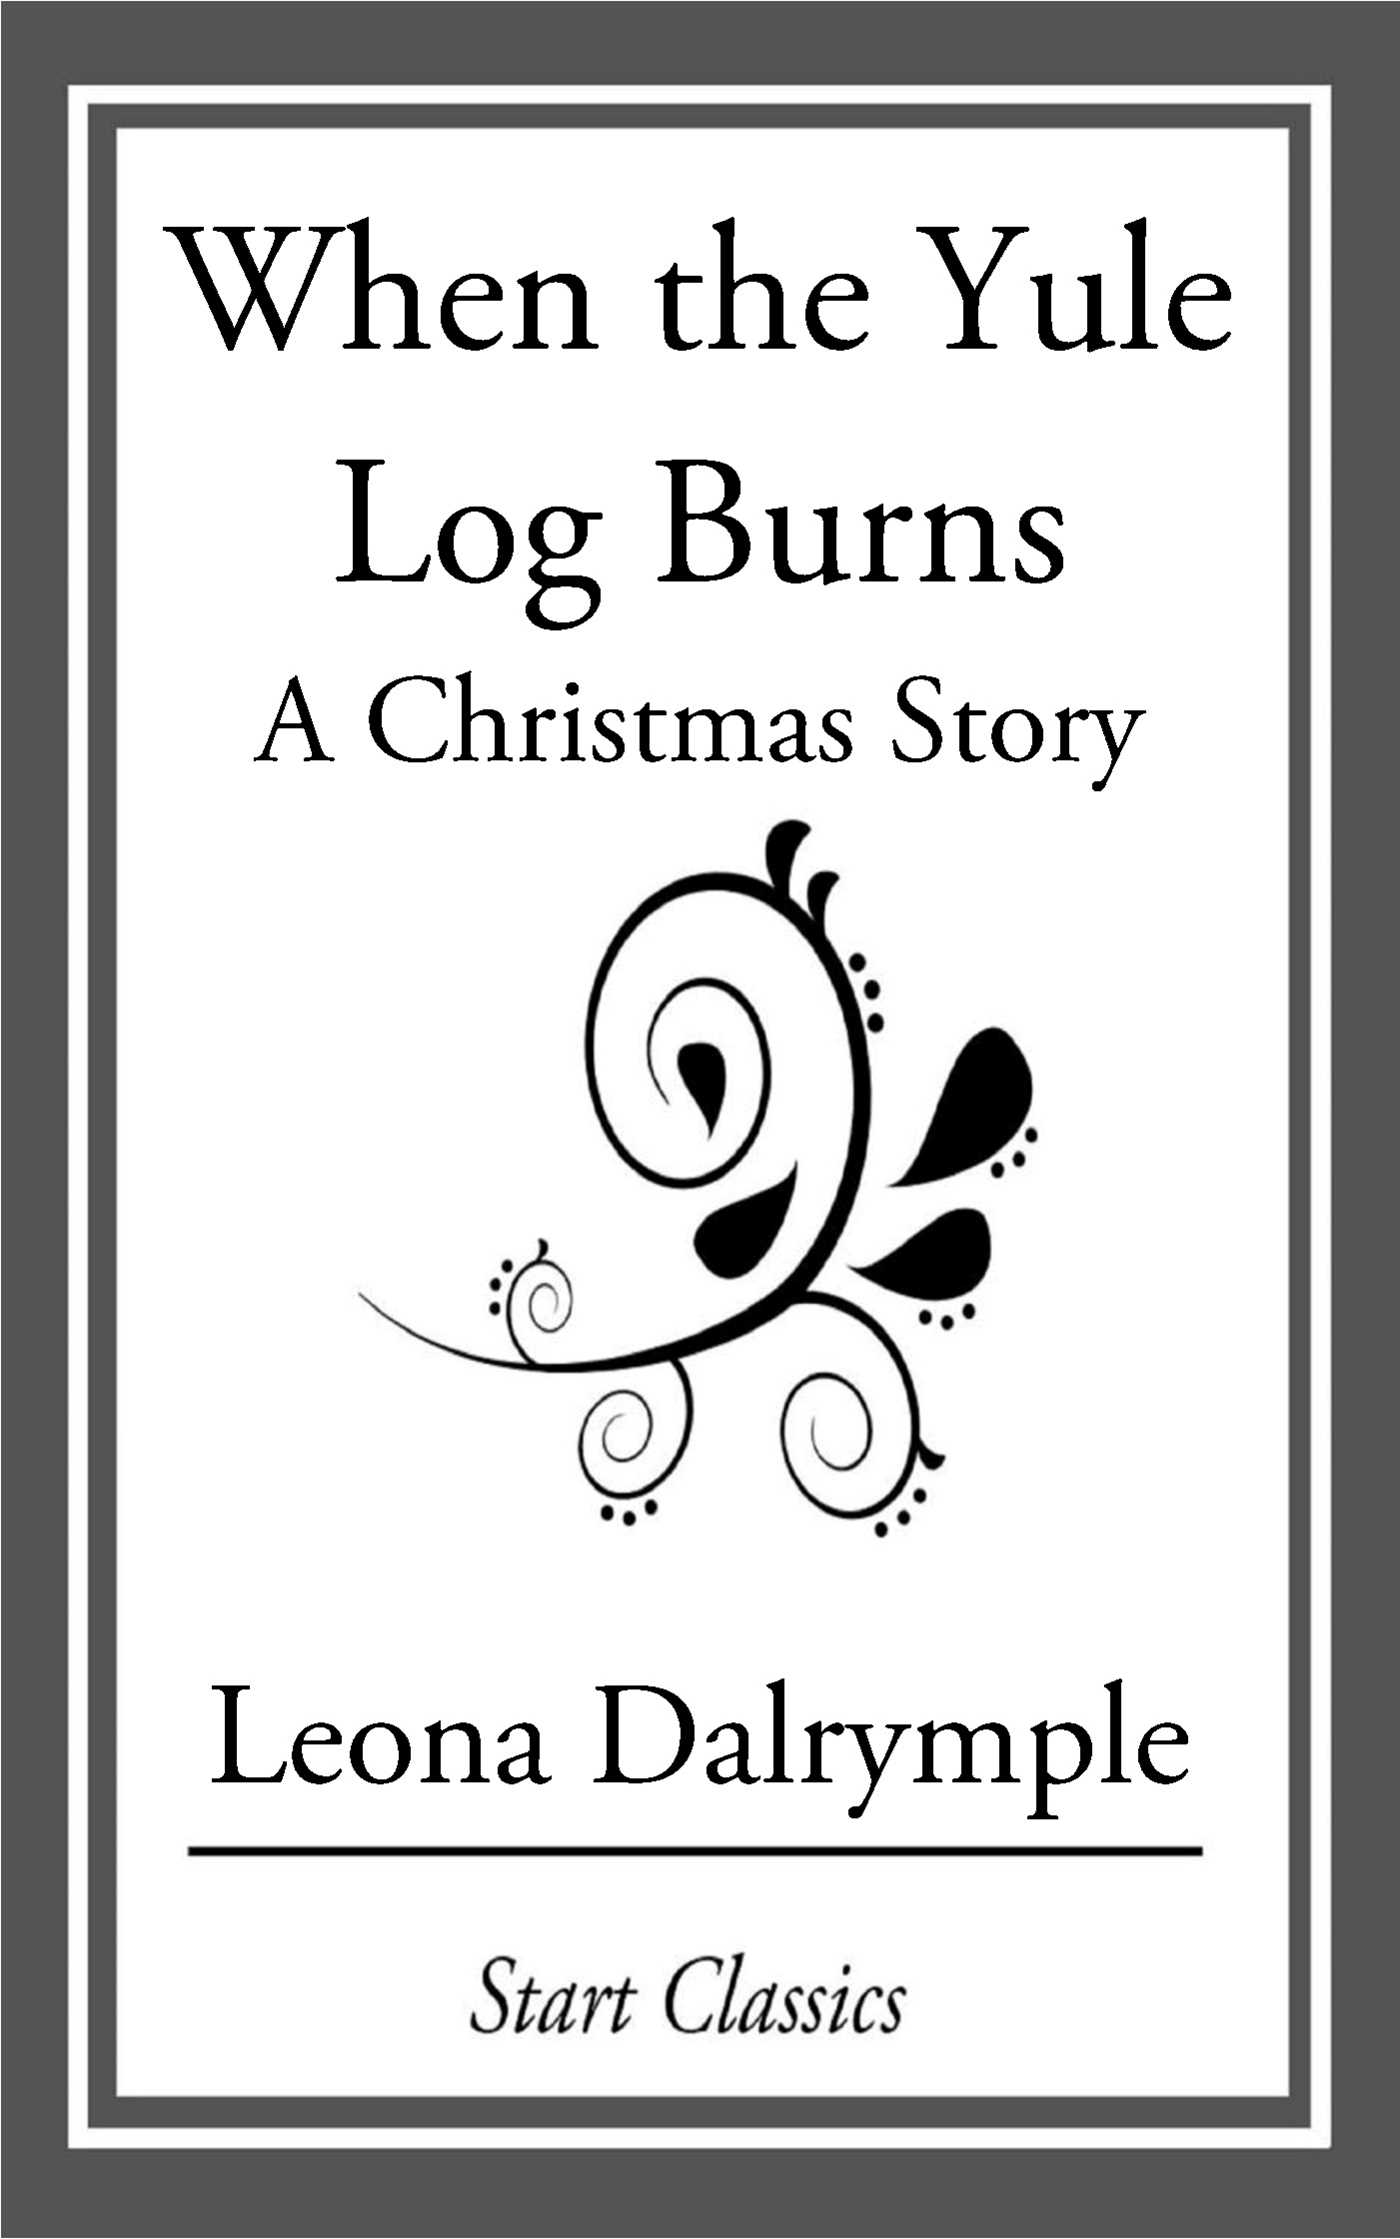 When the Yule Log Burns eBook by Leona Dalrymple | Official ...